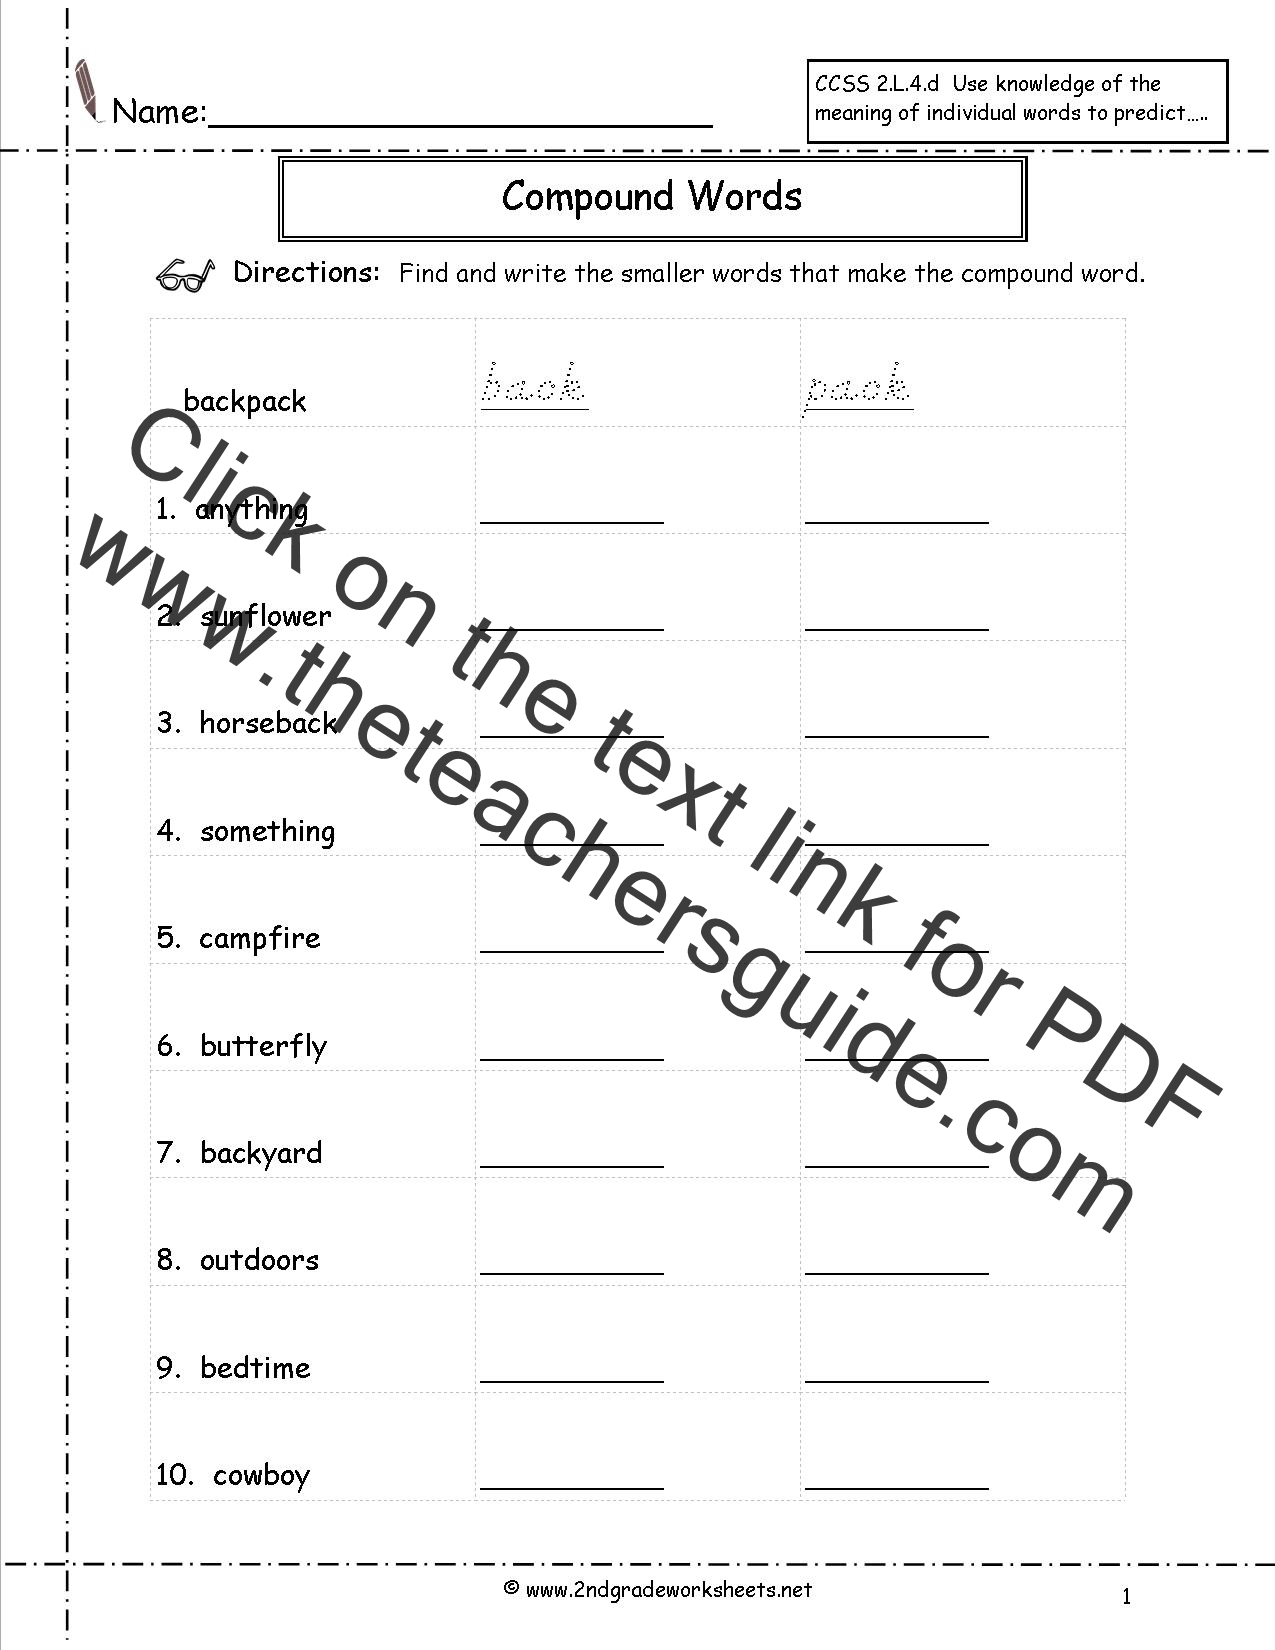 Worksheets Language Arts Worksheets free languagegrammar worksheets and printouts compound words worksheets